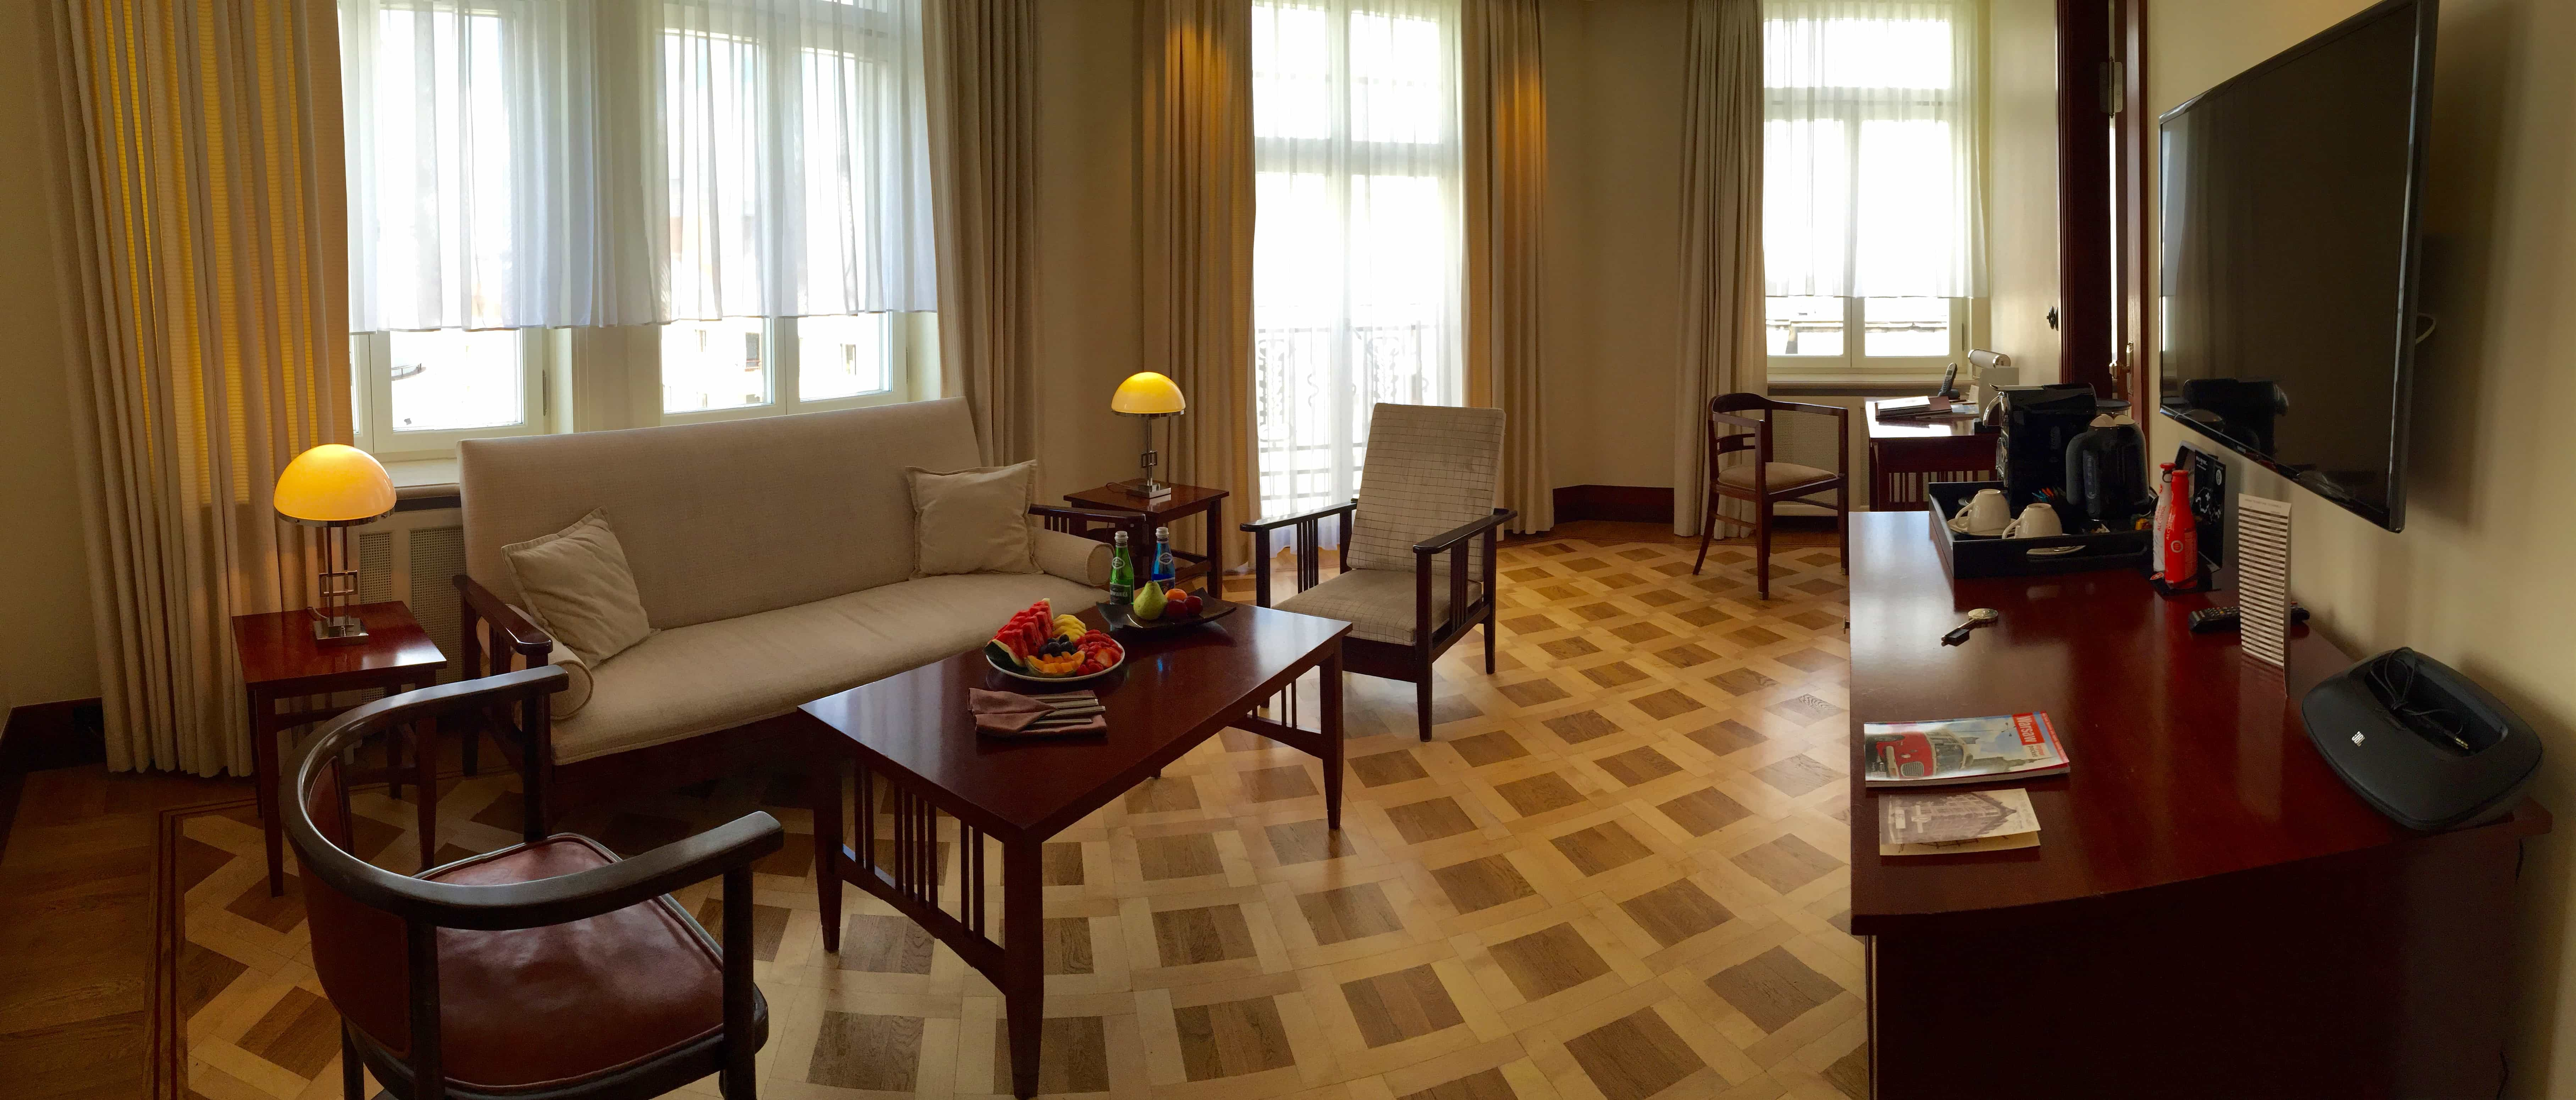 If you're looking for a beautiful, spacious hotel in Warsaw that serves the best breakfast in Poland, look no further than Hotel Rialto. Read more at www.thefivefoottraveler.com